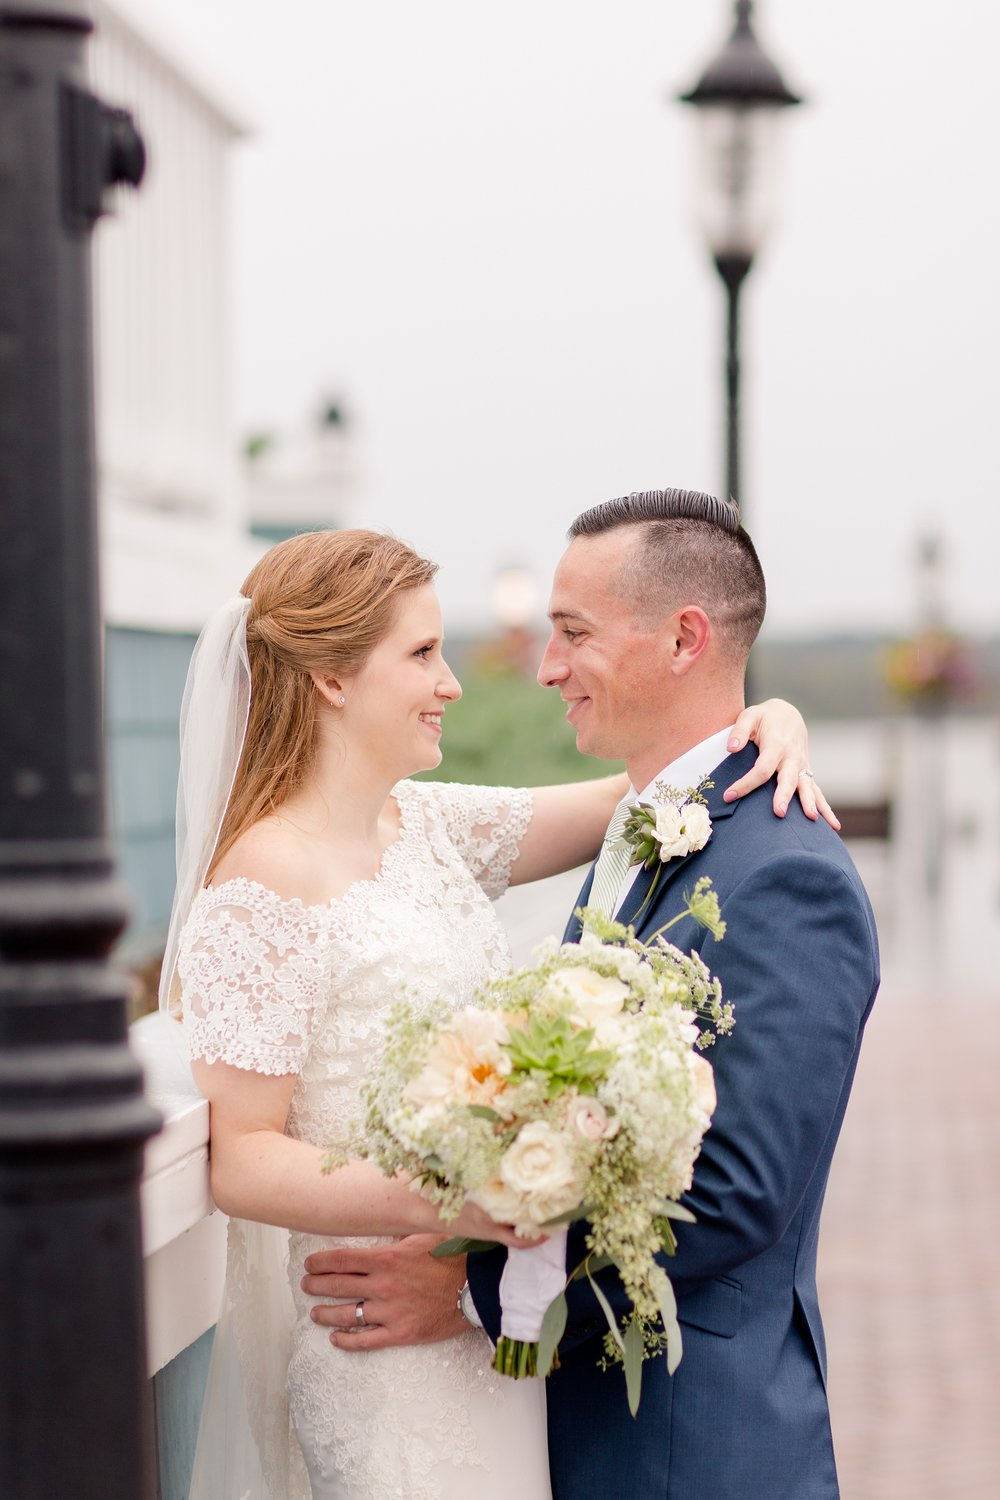 Martin 3-Bride & Groom Portraits-1224_anna grace photography virginia wedding photographer old town alexandria athenaeum wedding photo.jpg